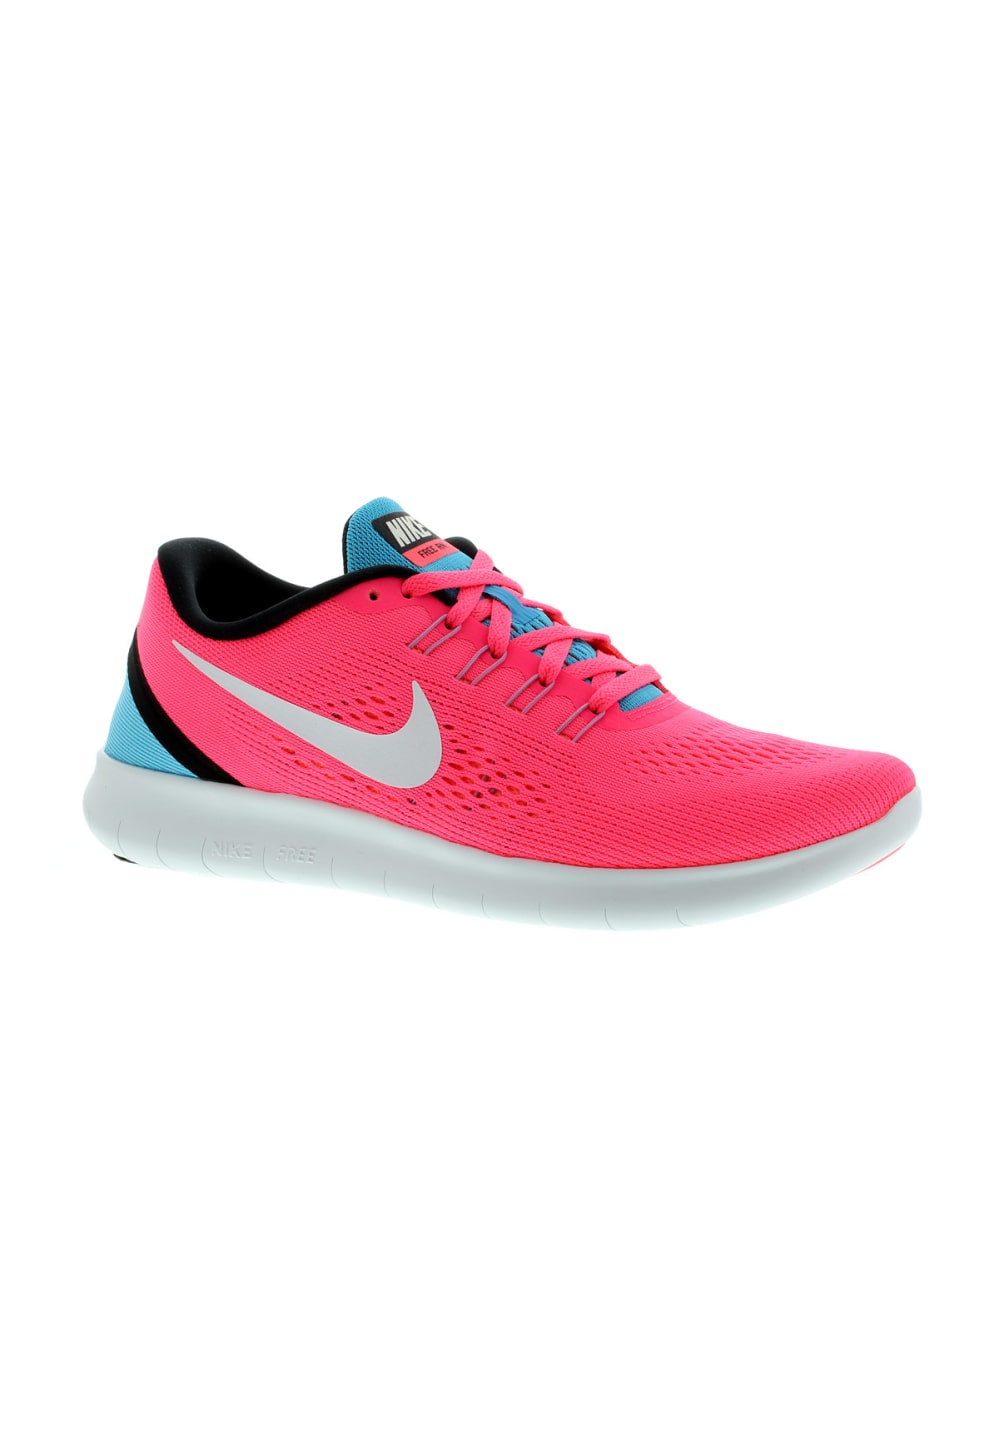 quality design dbfbc c34c3 Nike Free RN - Running shoes for Women - Pink